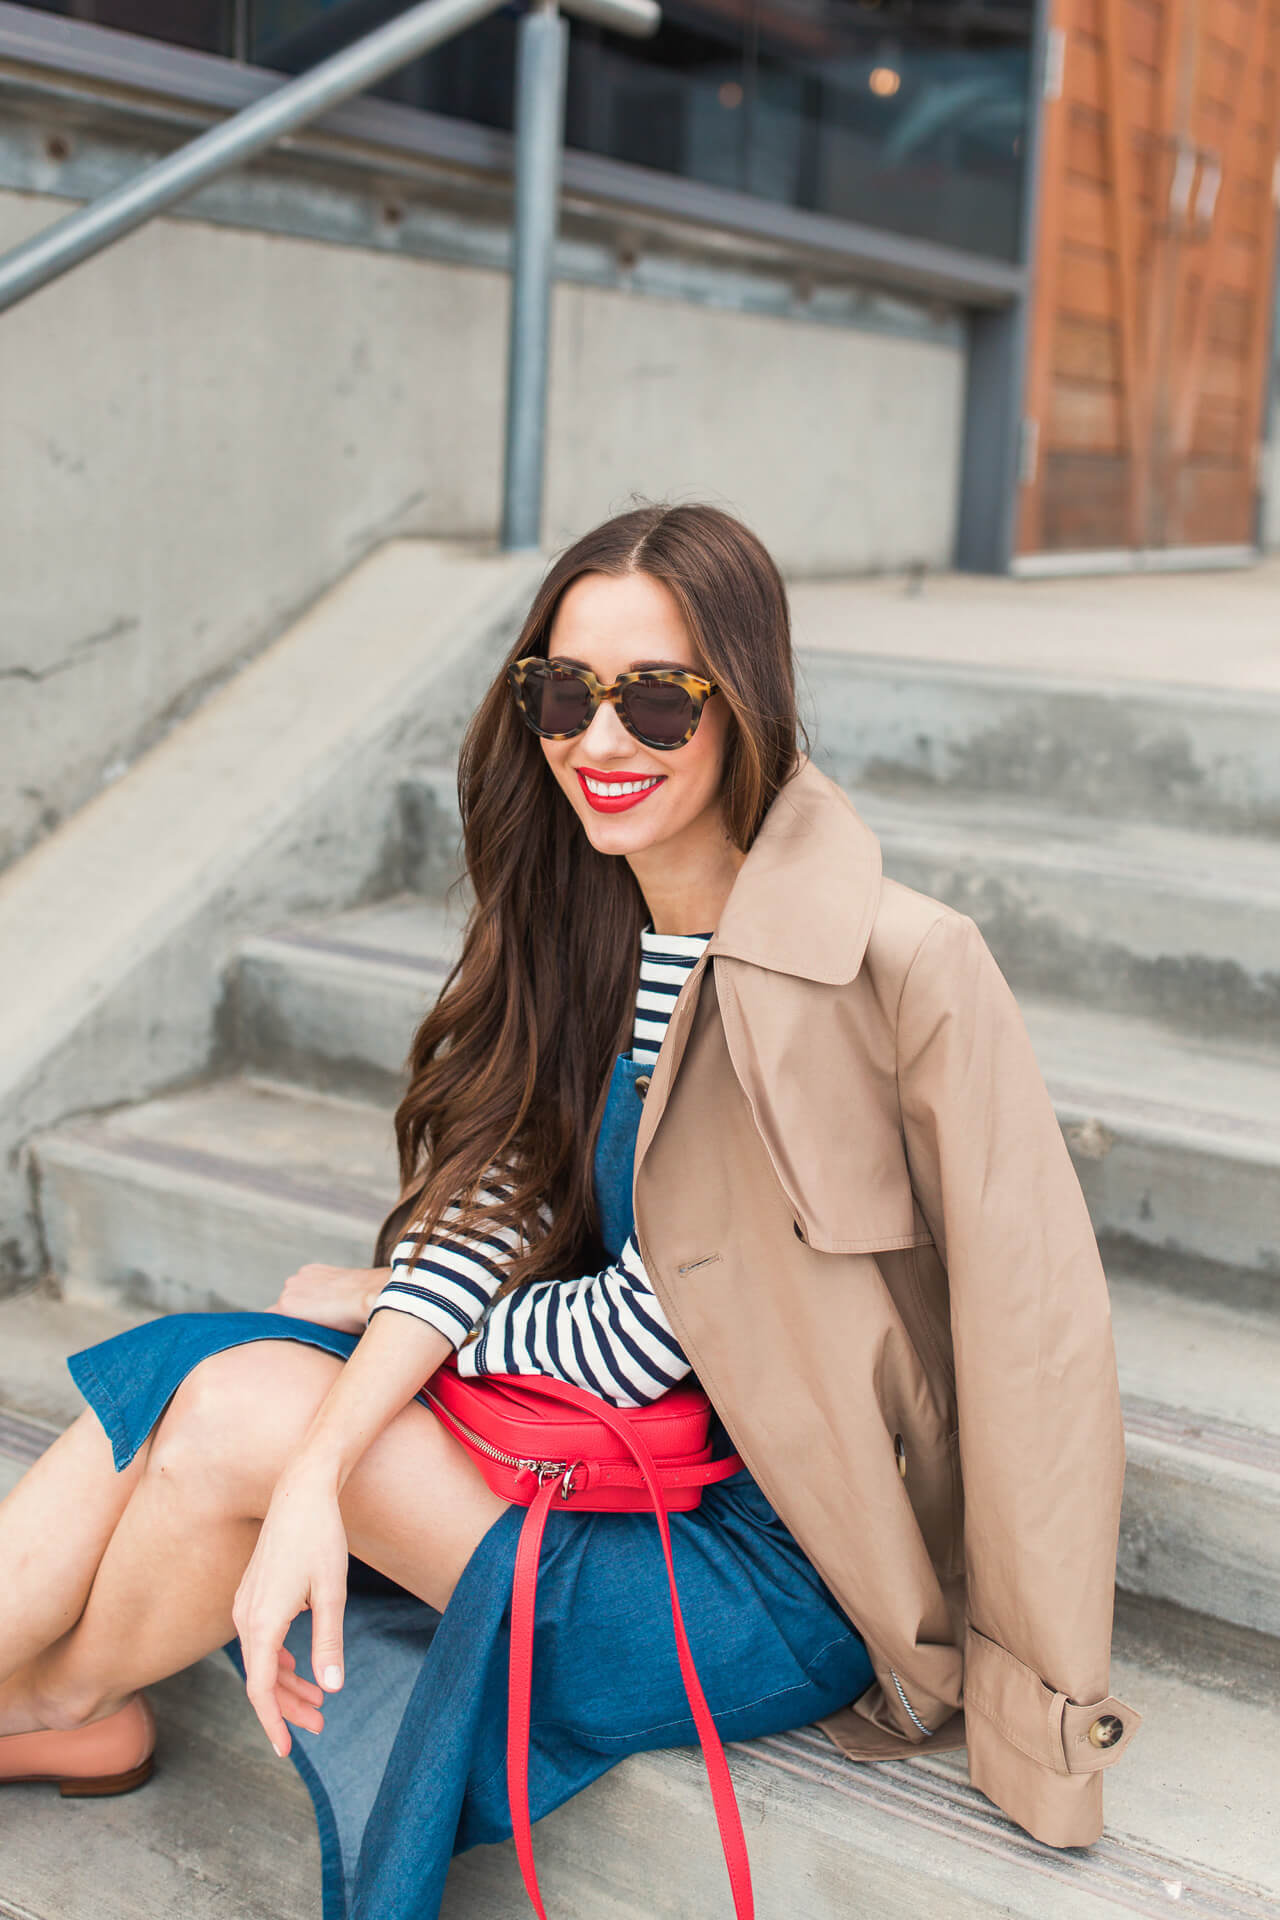 trench coat outfit inspiration for spring or fall - M Loves M